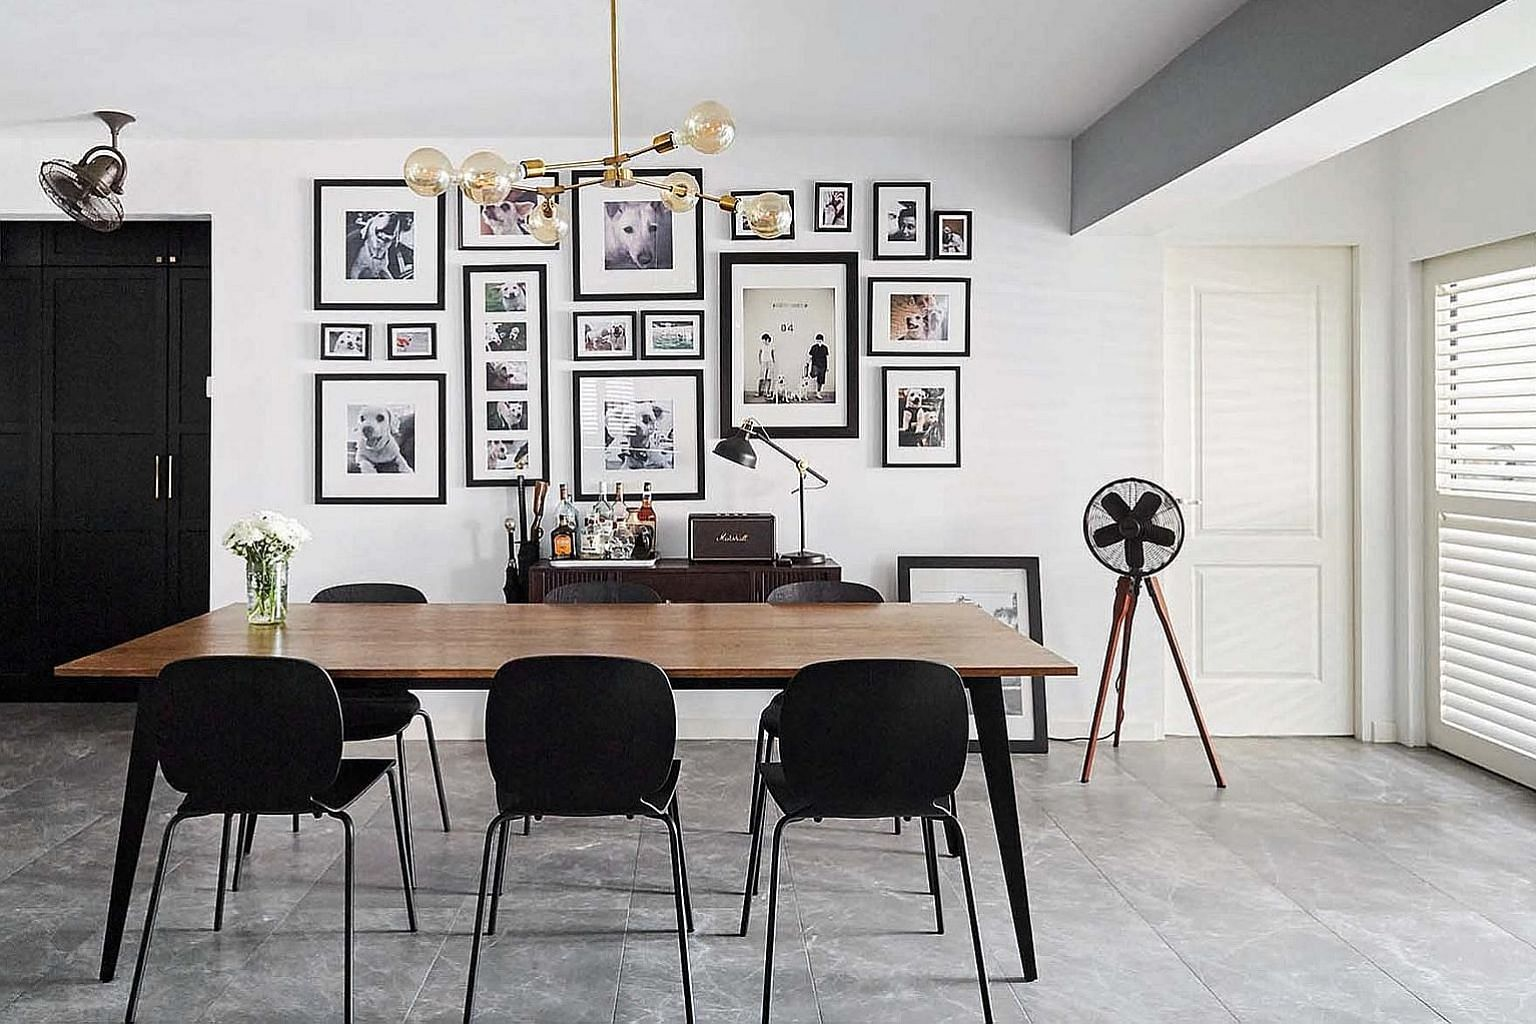 A wall of photographs near the dining table is an ode to the dogs of the home owners.